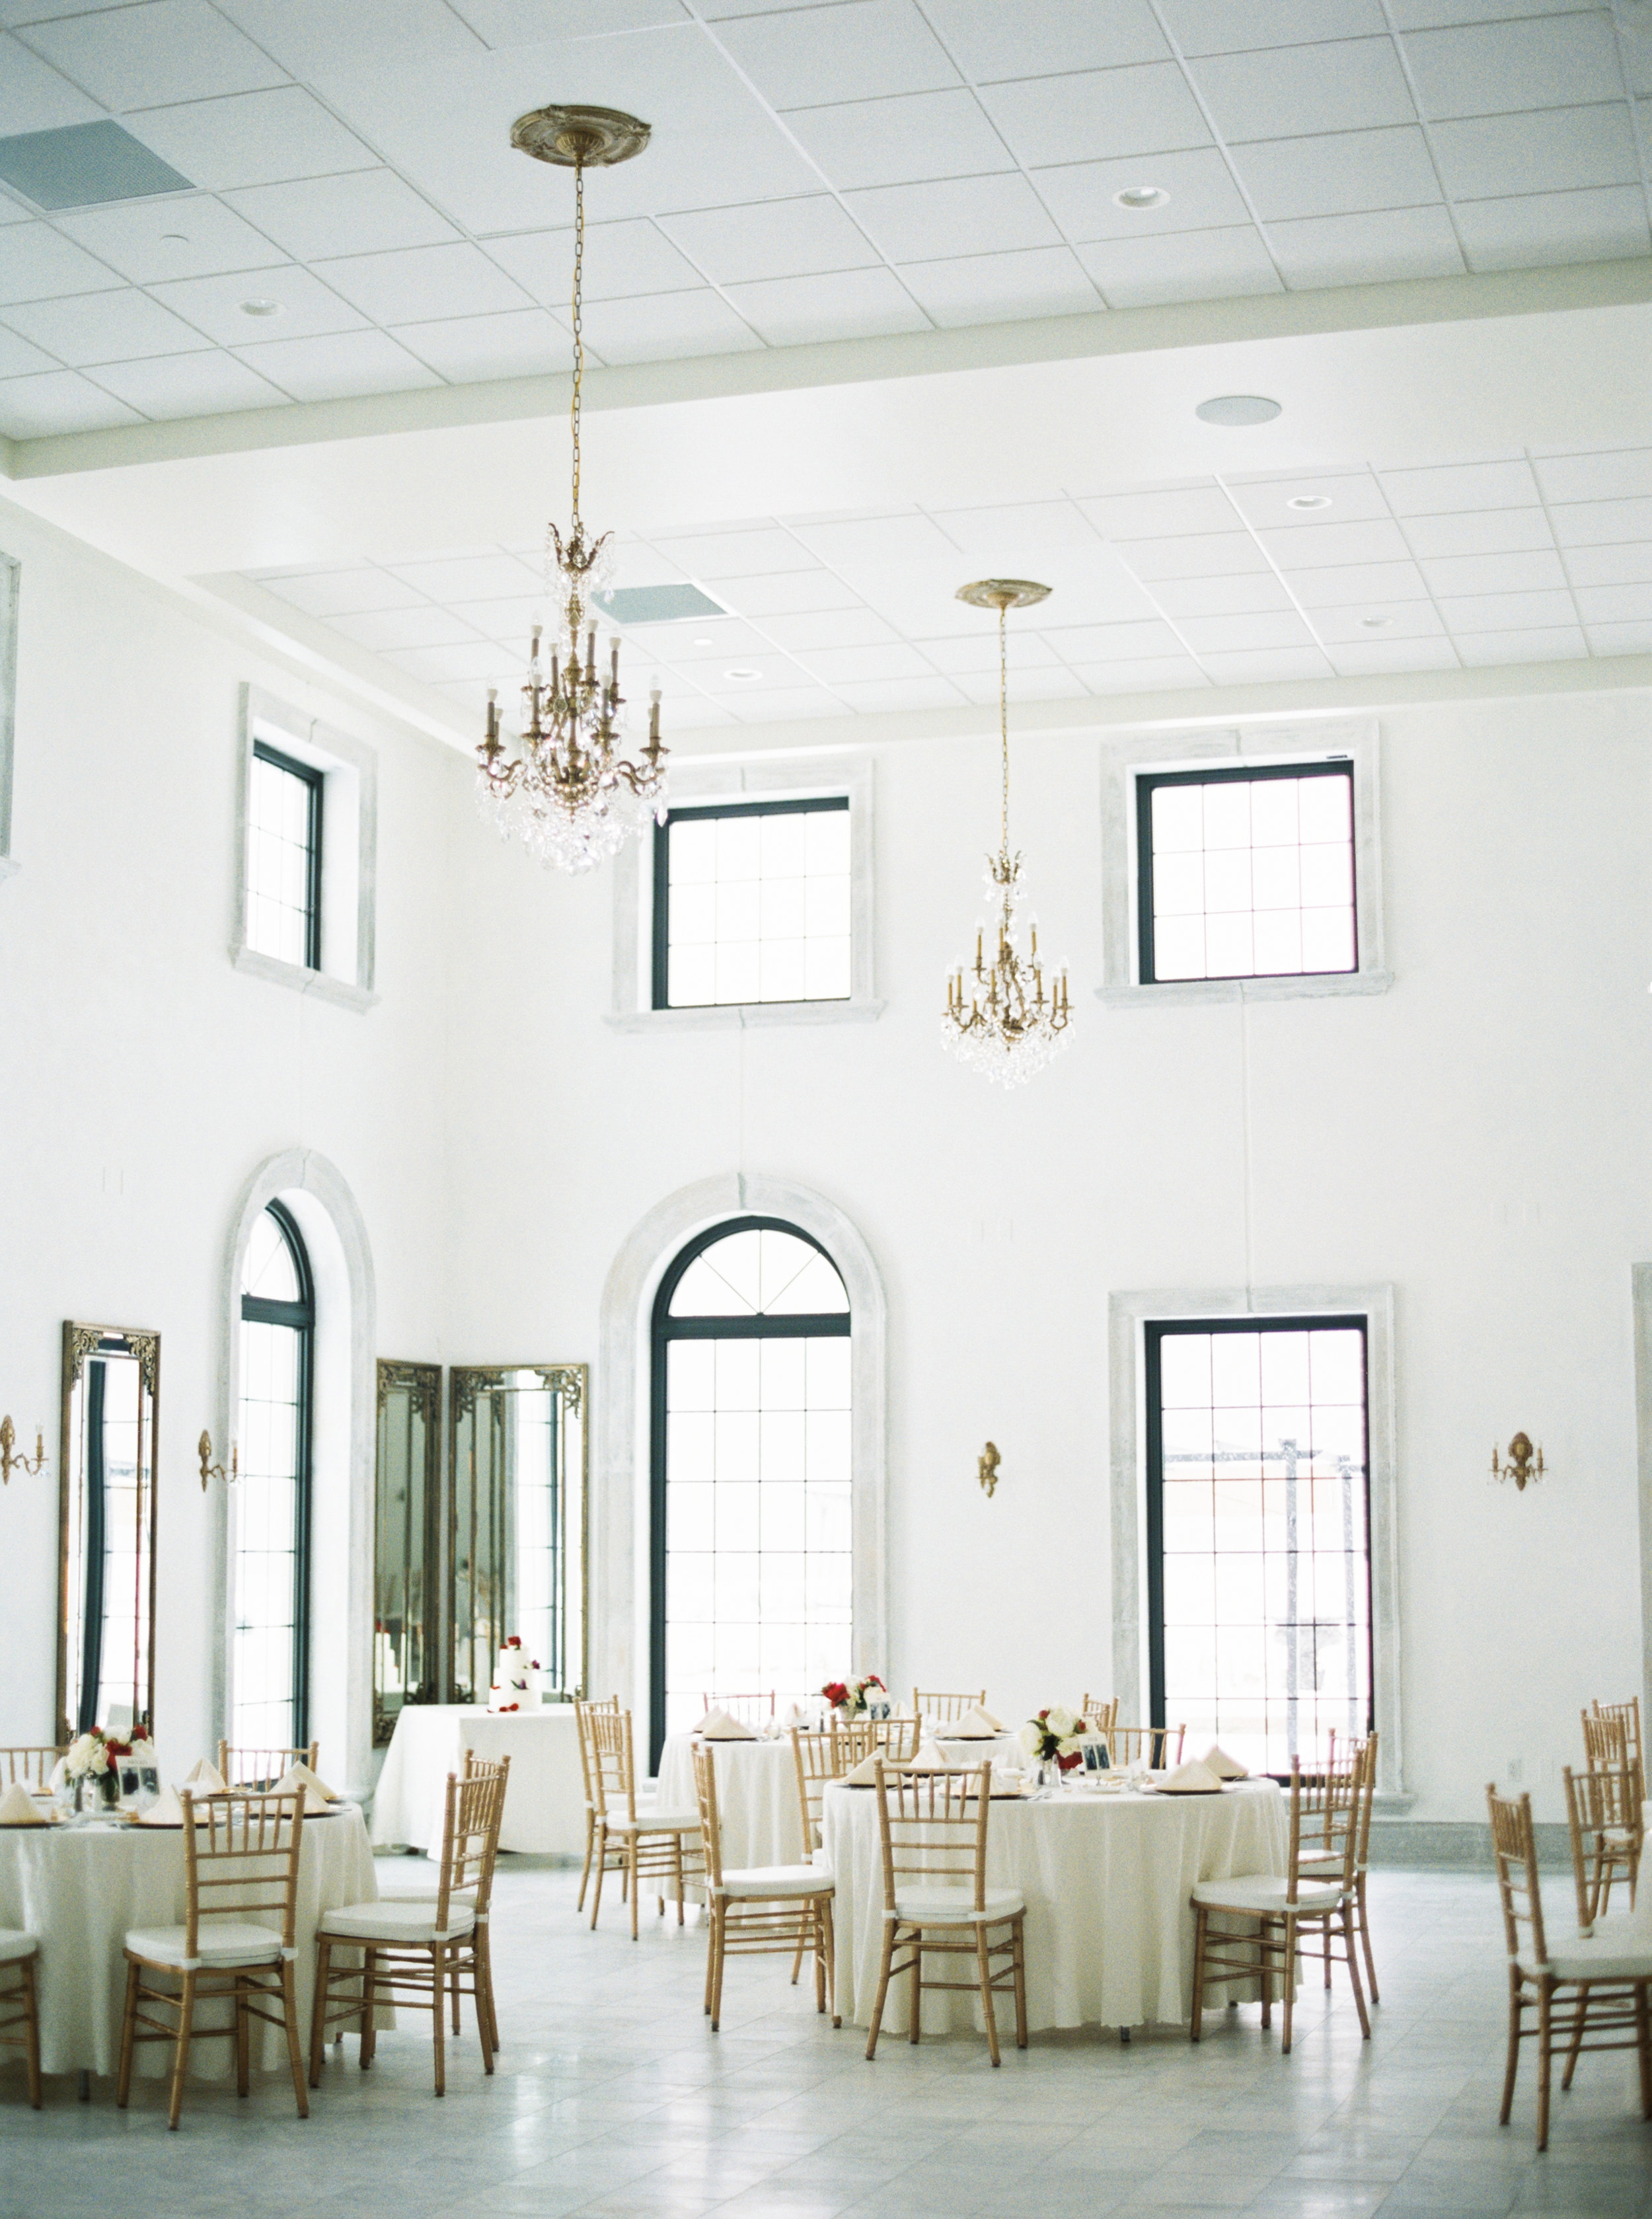 For a indoor, elegant wedding; Chateau is the place to be. It has plenty of indoor space, AMAZING food and great staff. I especially love the old school band performing smooth covers of Frank Sinatra, Dean Martin and other oldies favorites. Tons of natural indoor light with a french theme, plenty of parking and a outdoor patio space.http://chateaueagle.com/